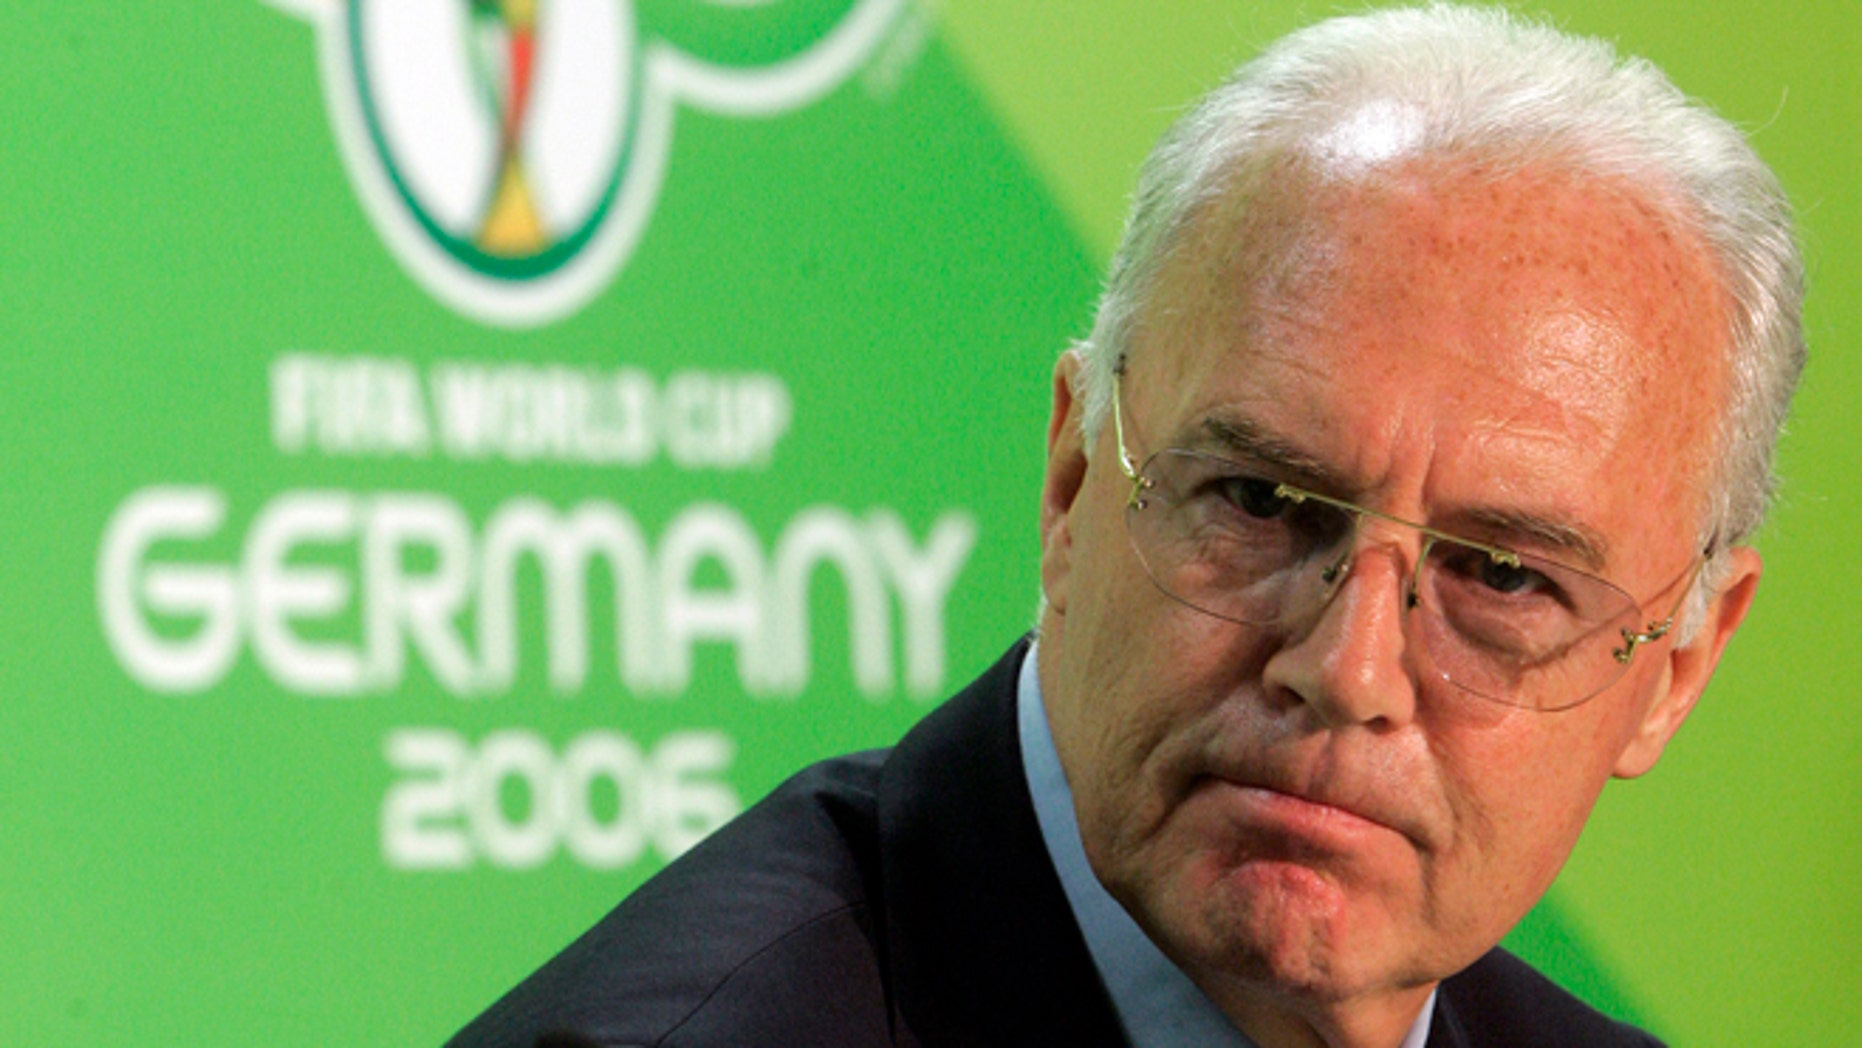 FILE - In this June 29, 2006 file picture Franz Beckenbauer, then President of the German Organization Committee of the soccer World Cup briefs the media during a news conference at the Olympic Stadium in Berlin.  A highly anticipated independent report to be released Friday March 4, 2016 could throw light into corruption allegations against Germany's 2006 World Cup organizers and the fate of a dubious payment to FIFA.  (AP Photo/Markus Schreiber,file)